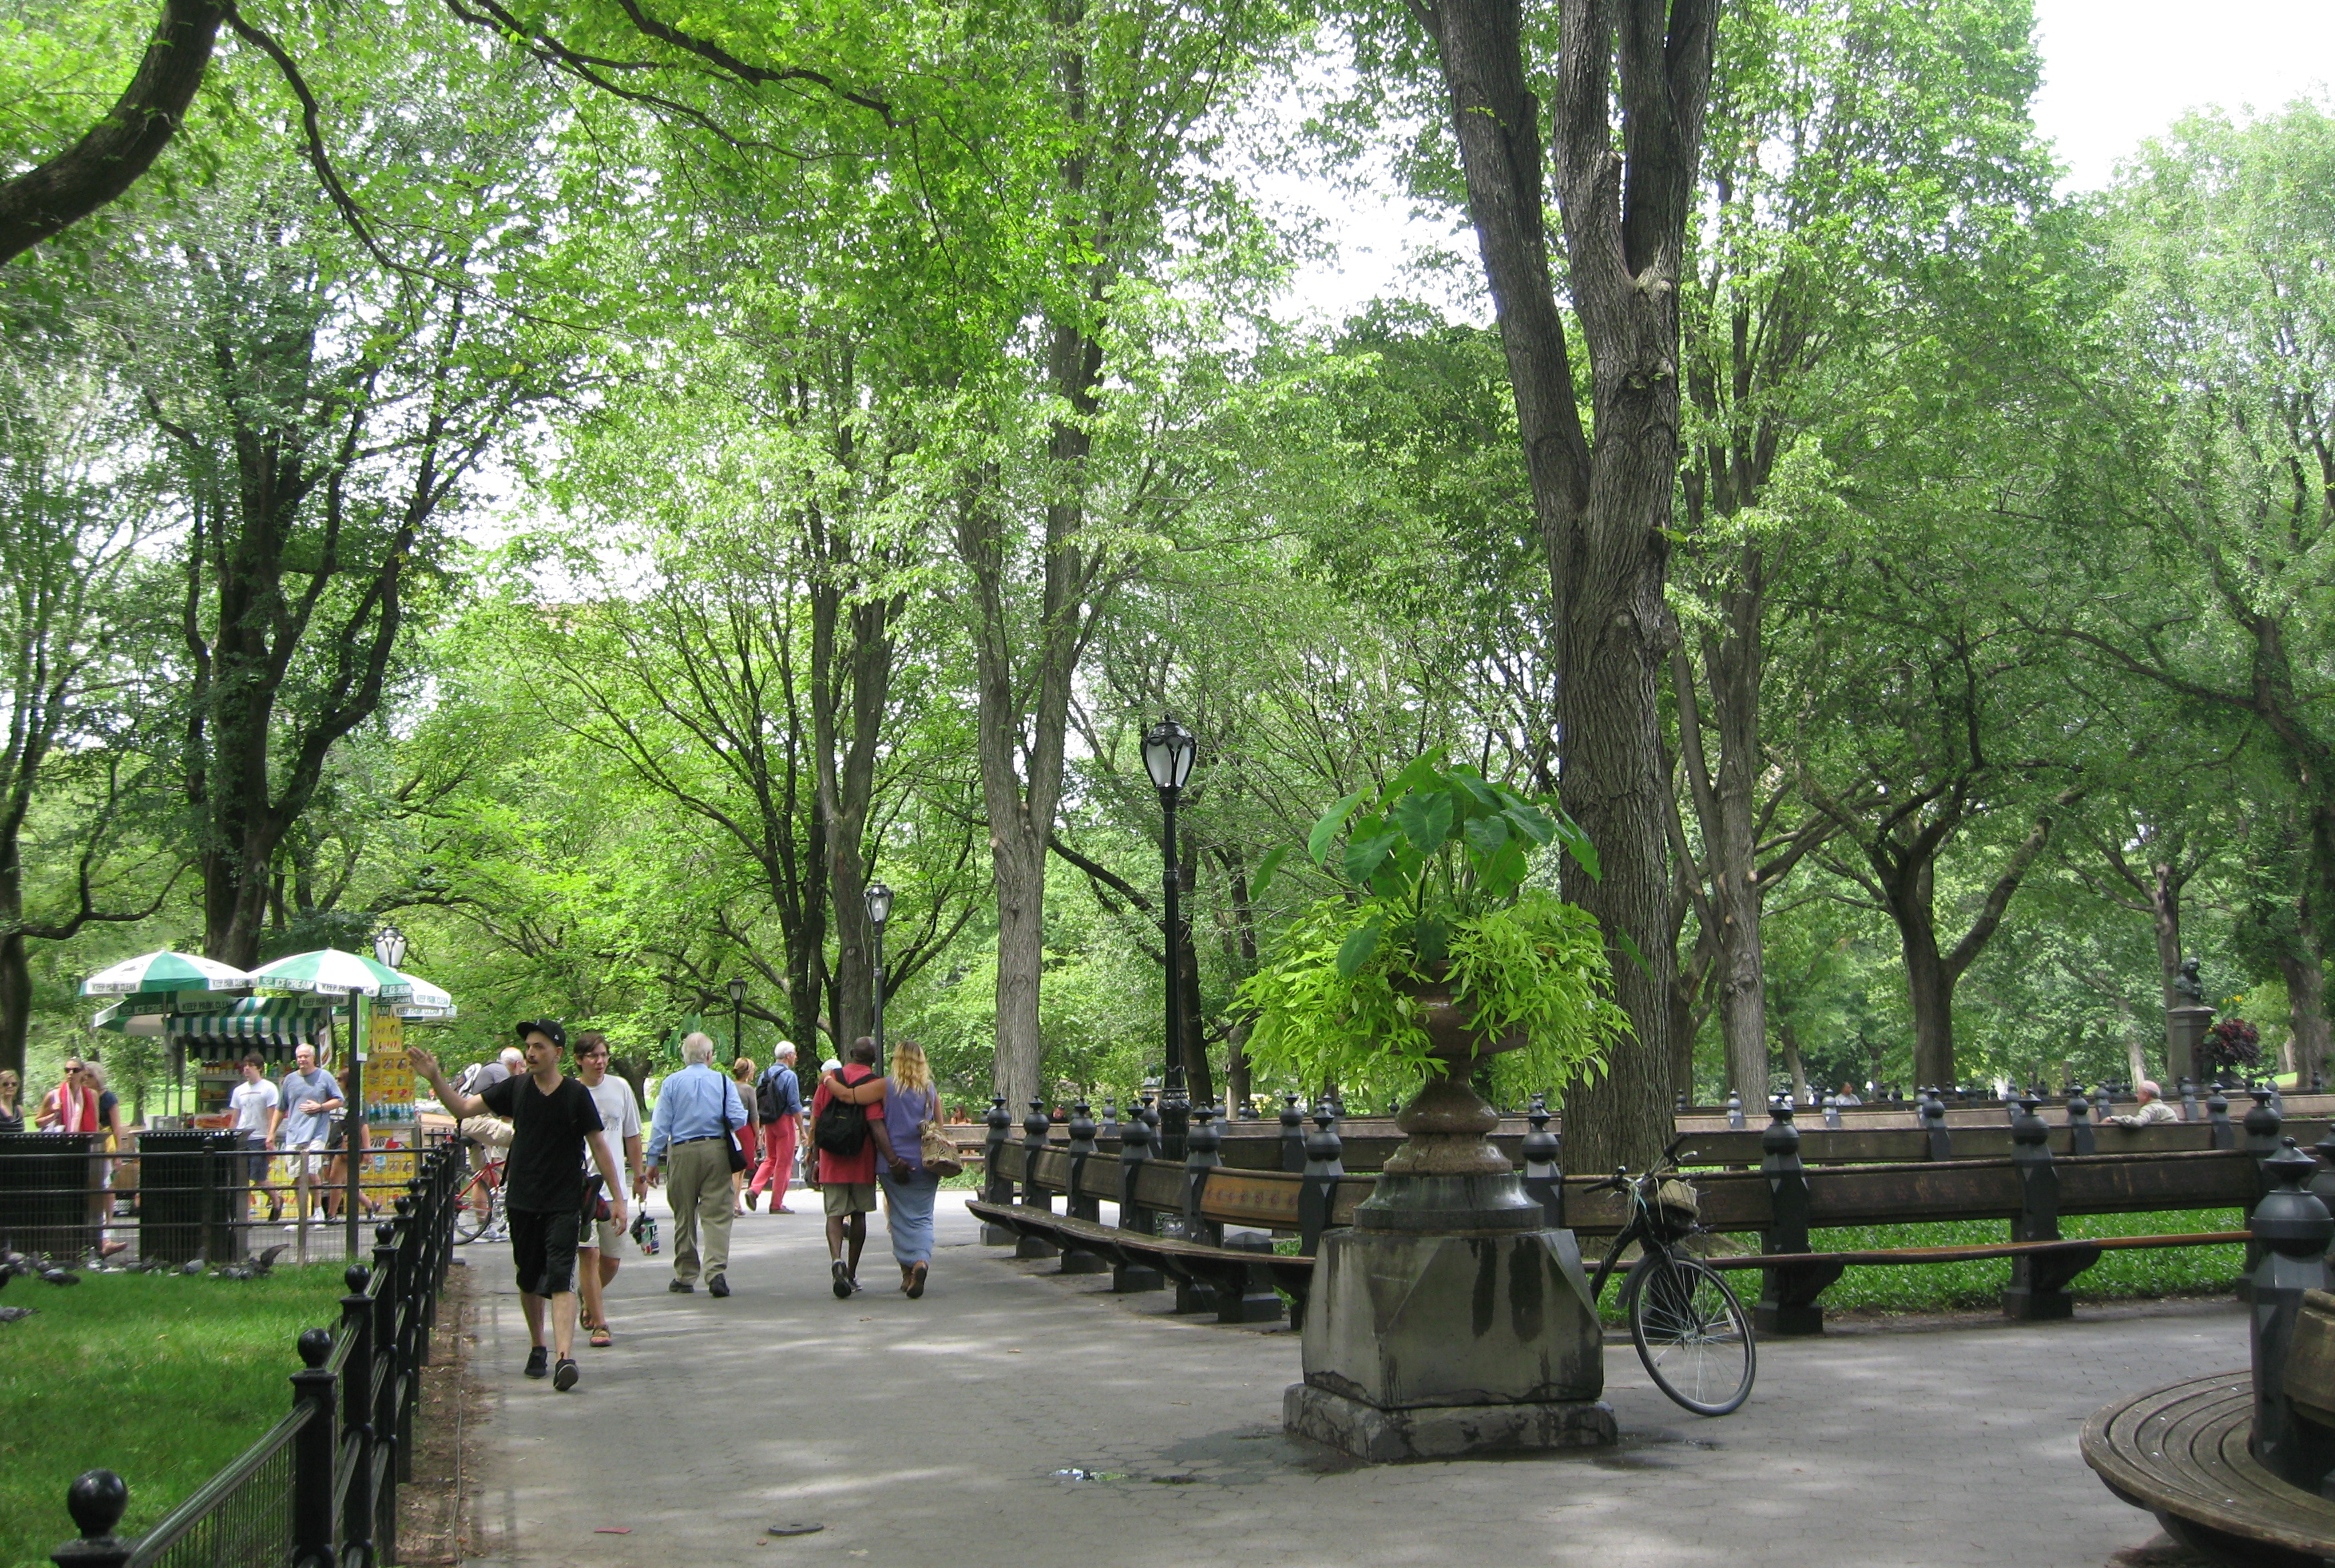 One of Central Parks Broad Avenues. Photo by me